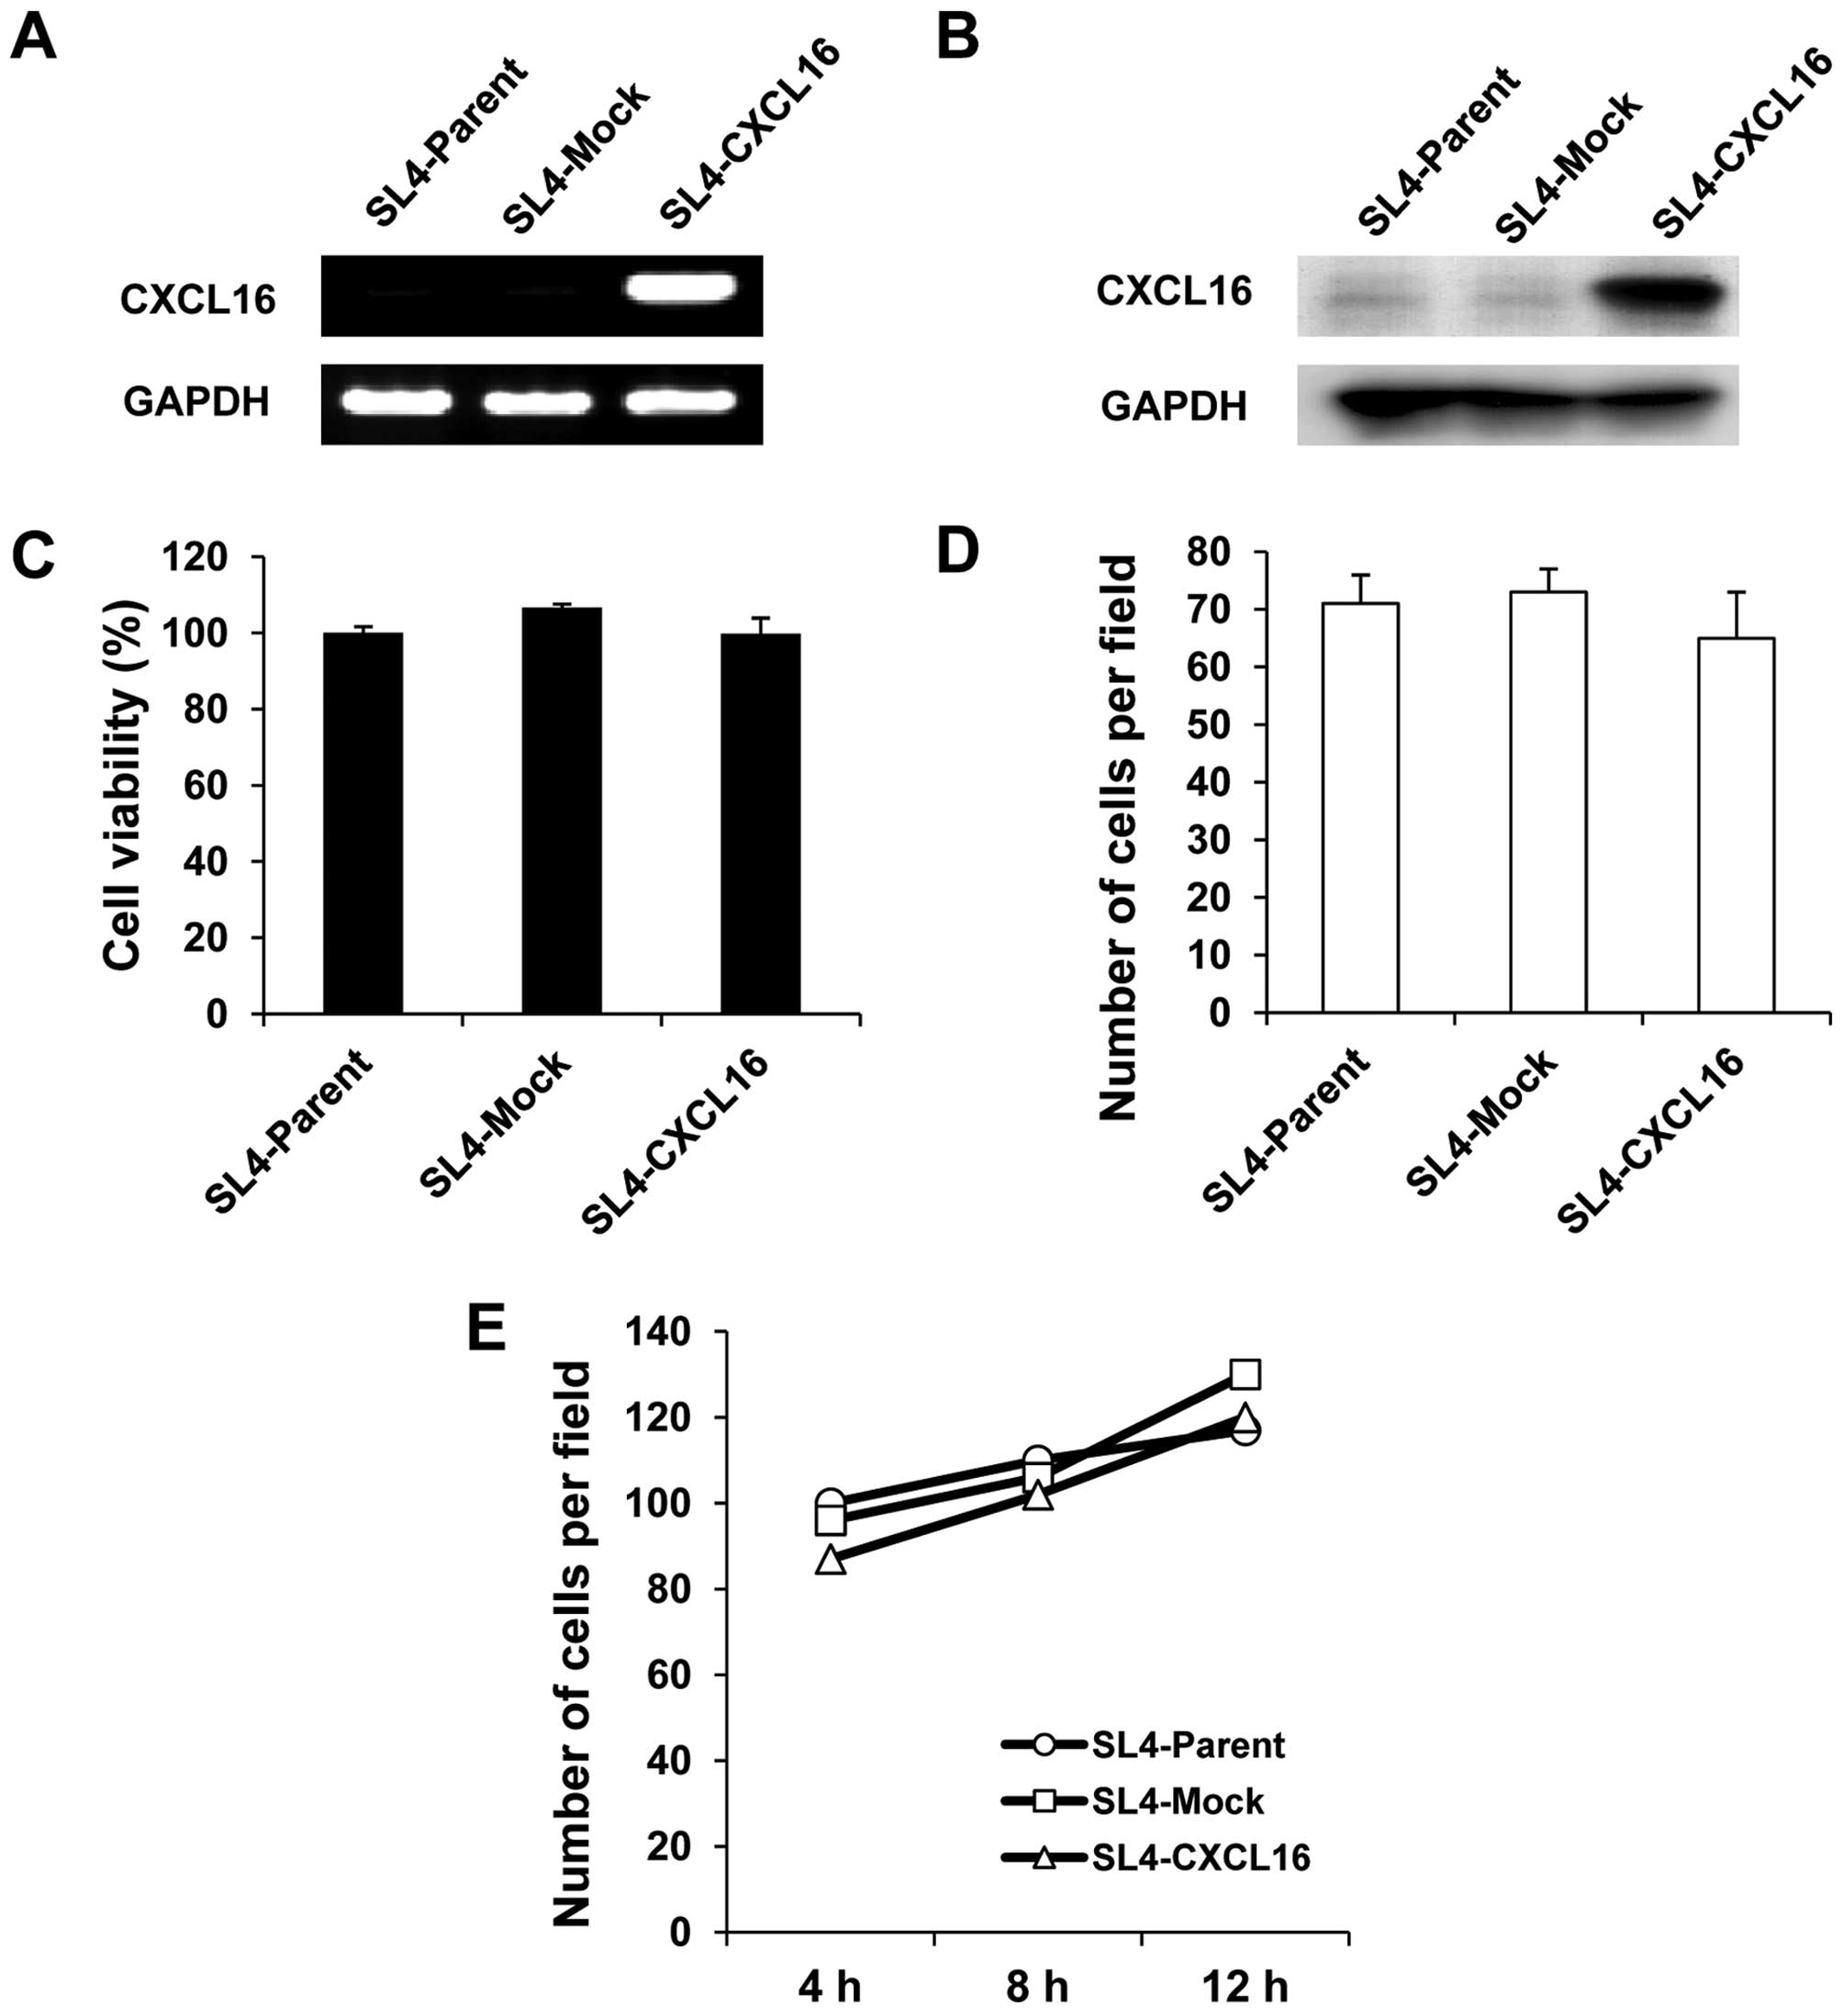 Chemokine Cxcl16 Suppresses Liver Metastasis Of Colorectal Cancer Via Augmentation Of Tumor Infiltrating Natural Killer T Cells In A Murine Model